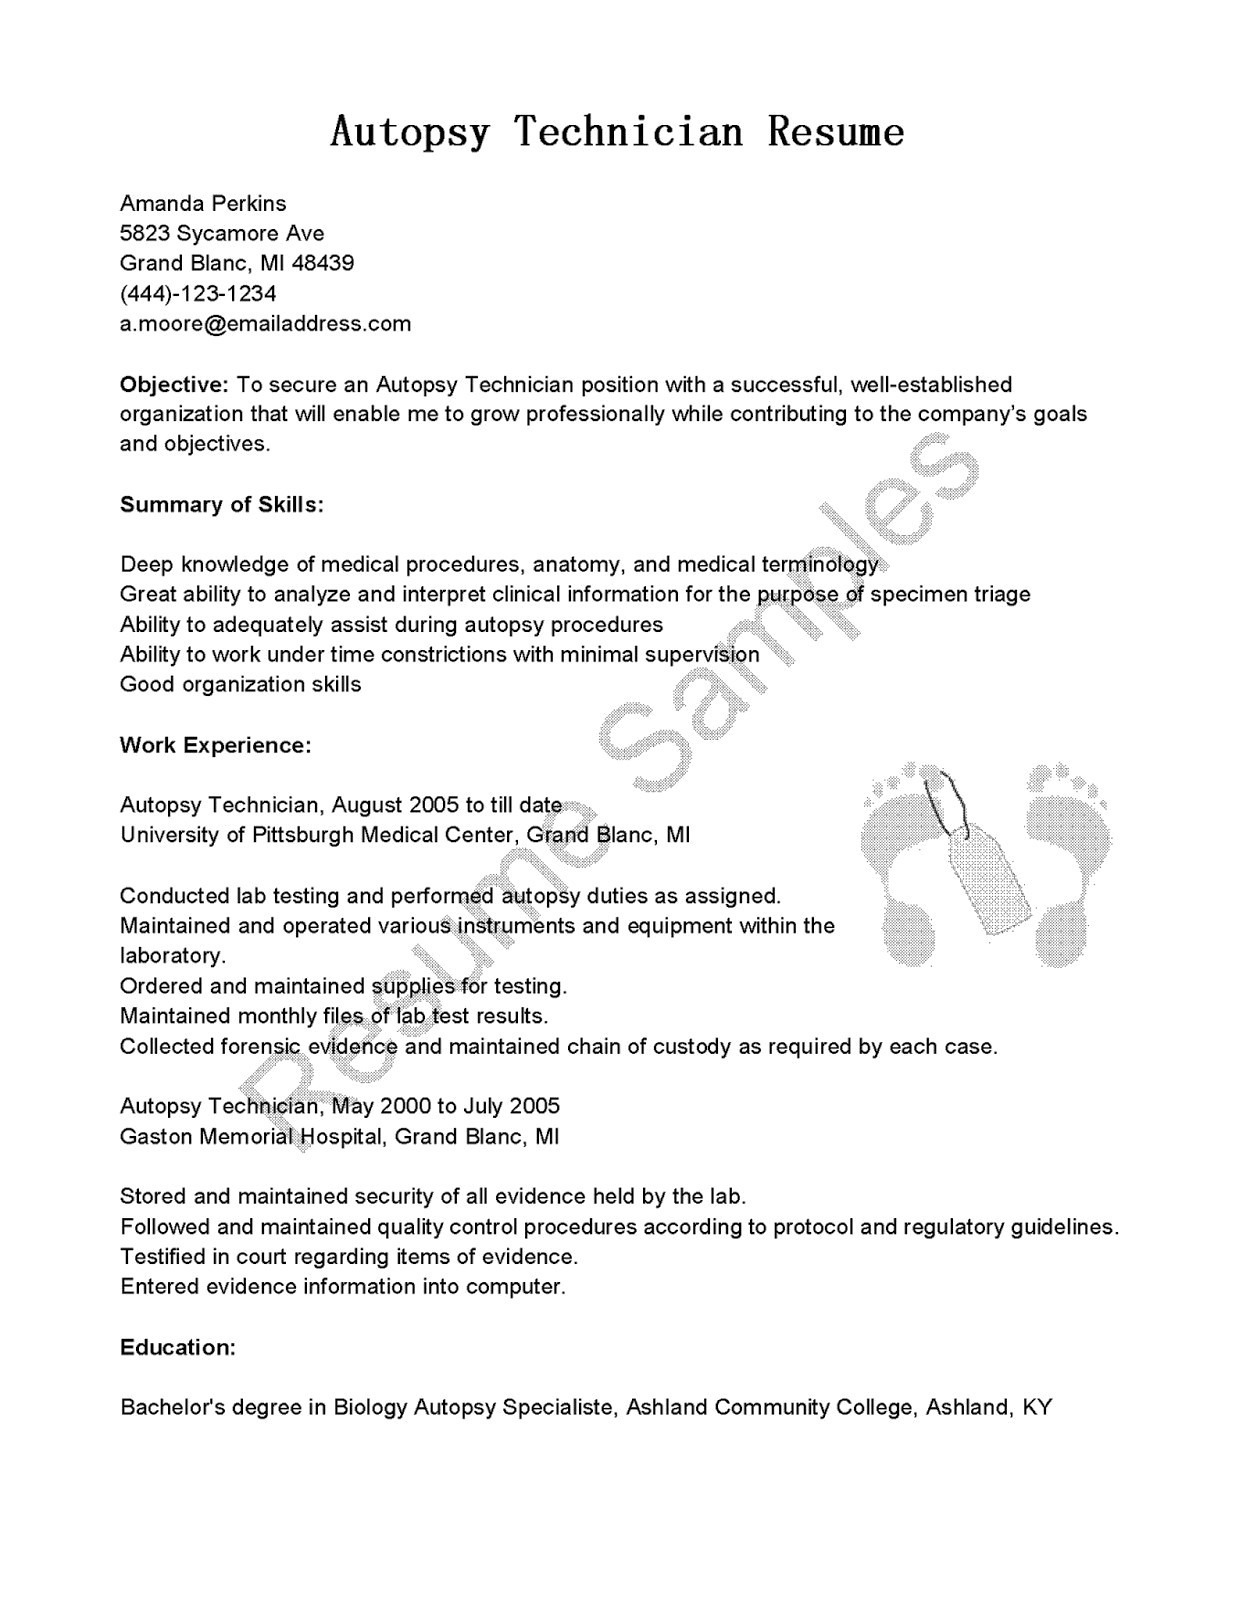 College Application Resume Template Free - College Admissions Resume Template Refrence Job Application Resume